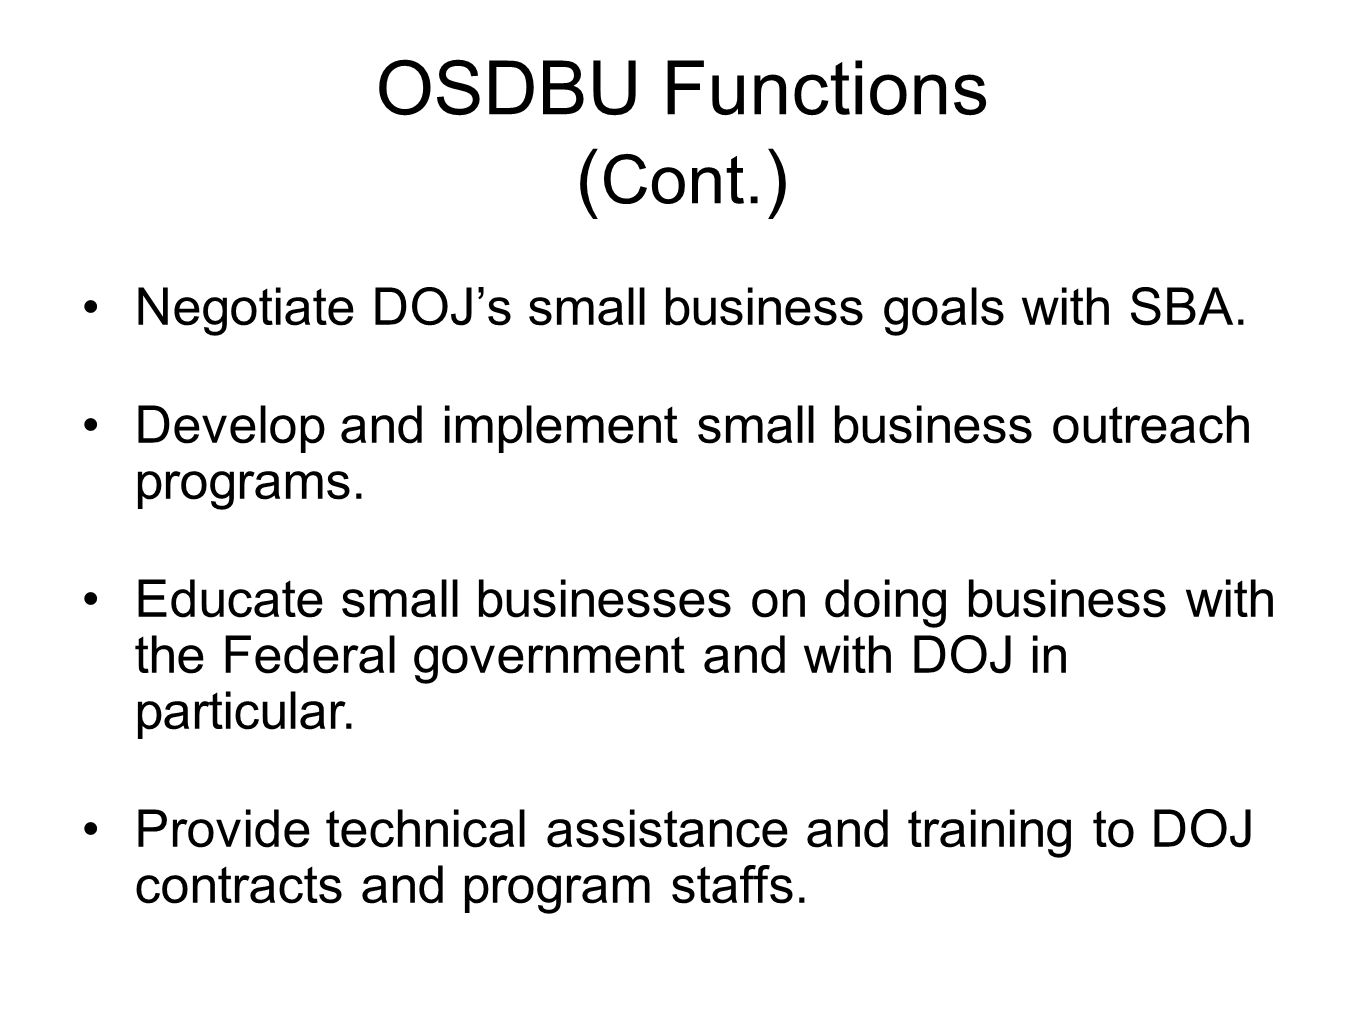 OSDBU Functions ( Cont. ) Negotiate DOJ's small business goals with SBA.